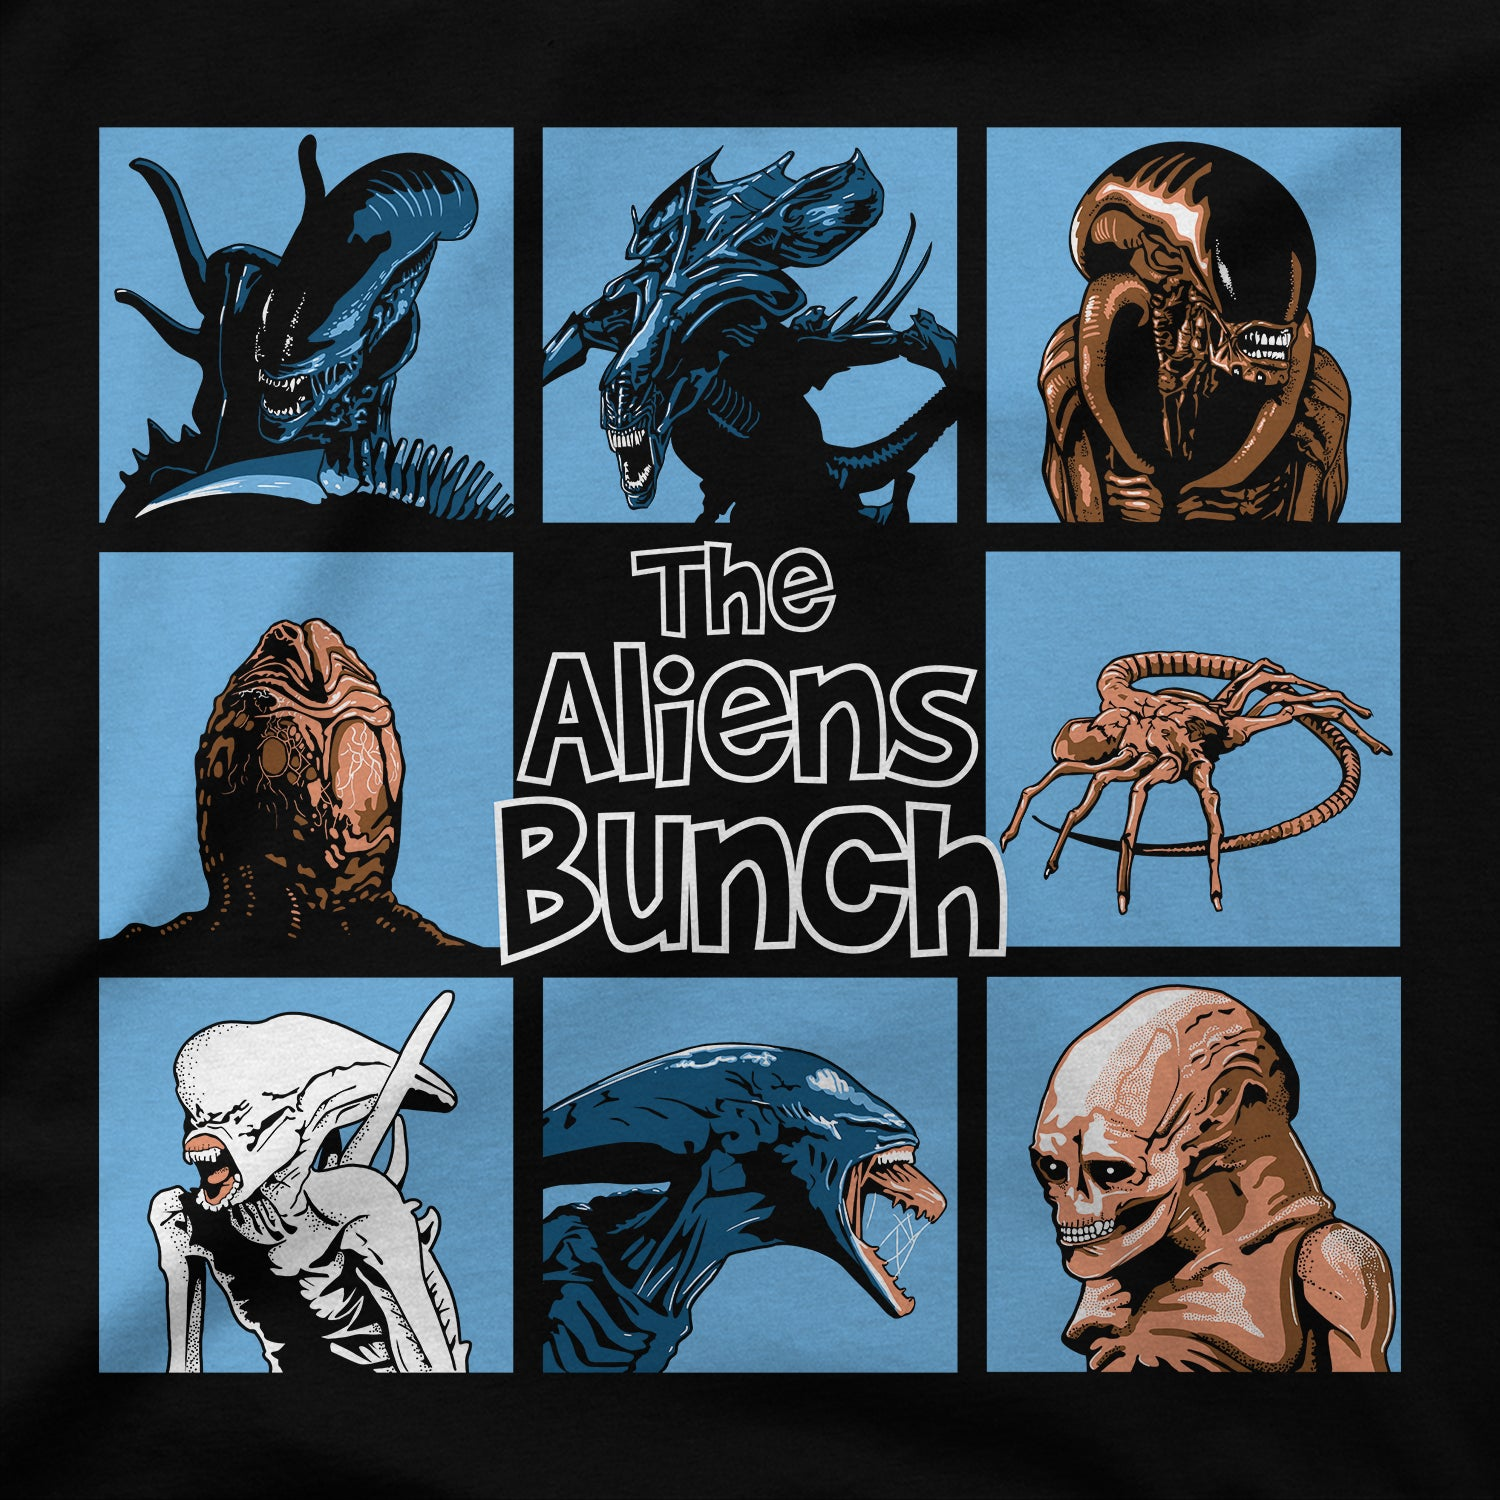 The Aliens Bunch